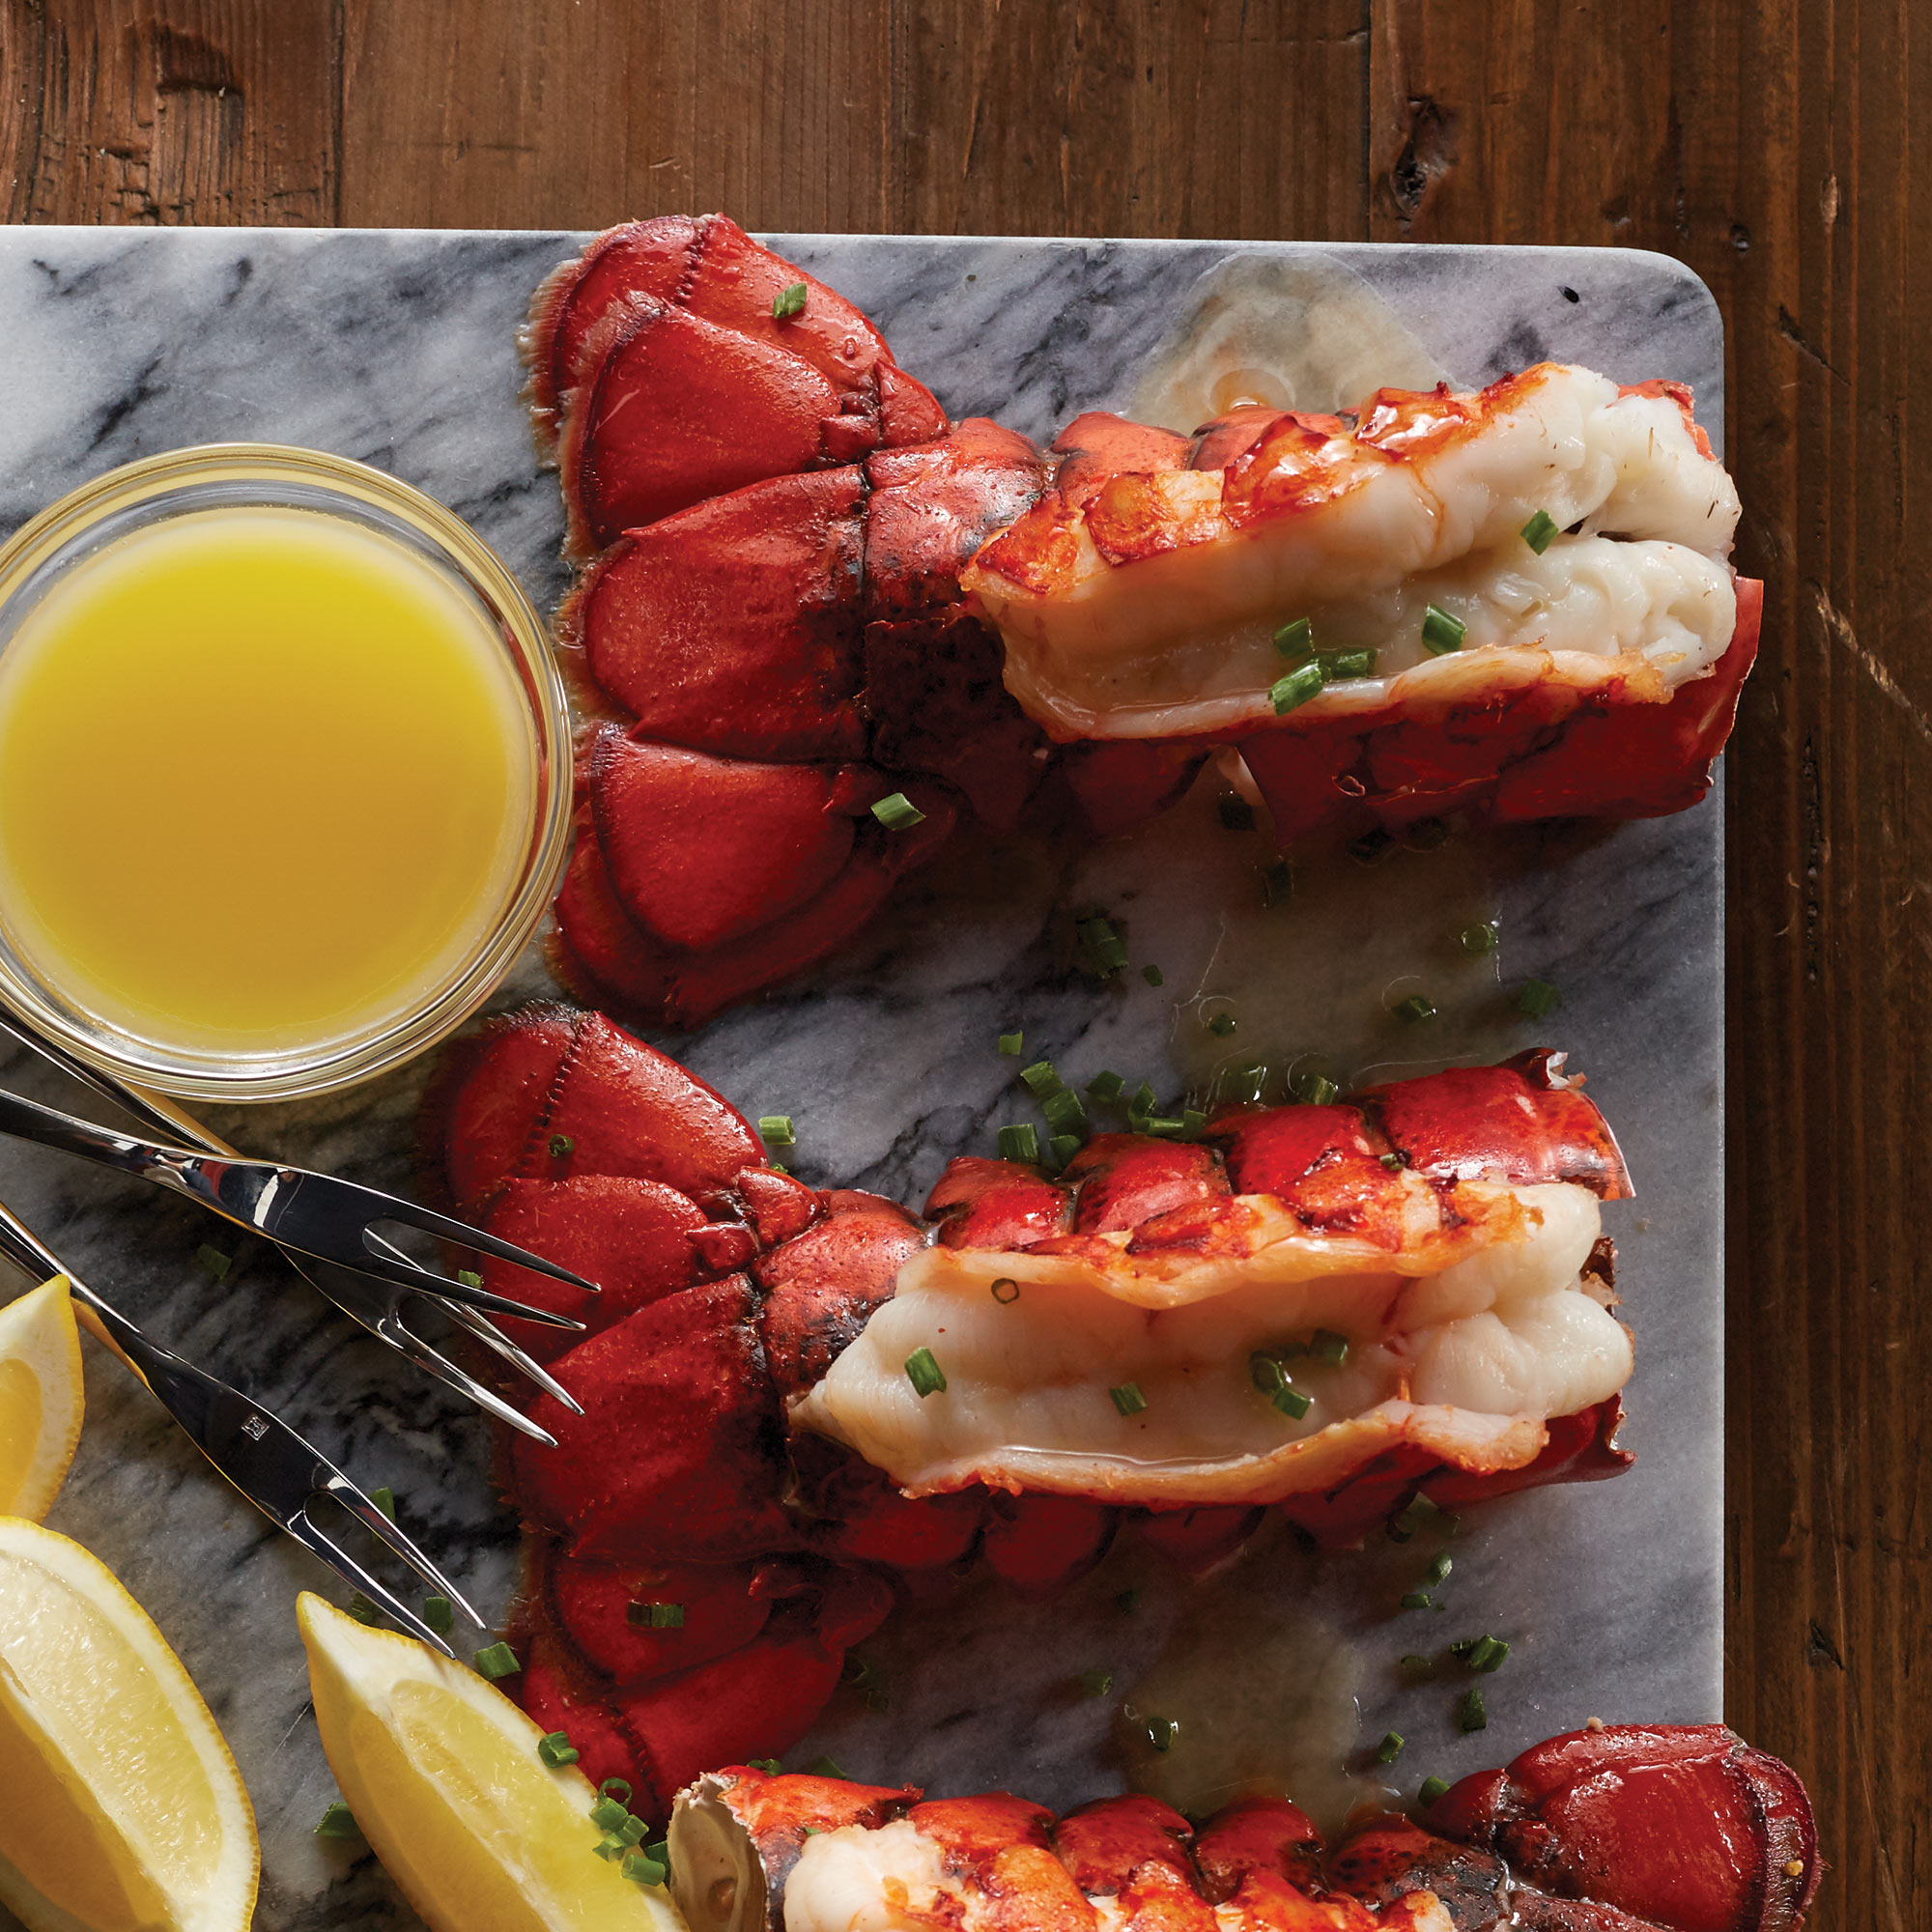 (4) 8 oz Maine Lobster Tails